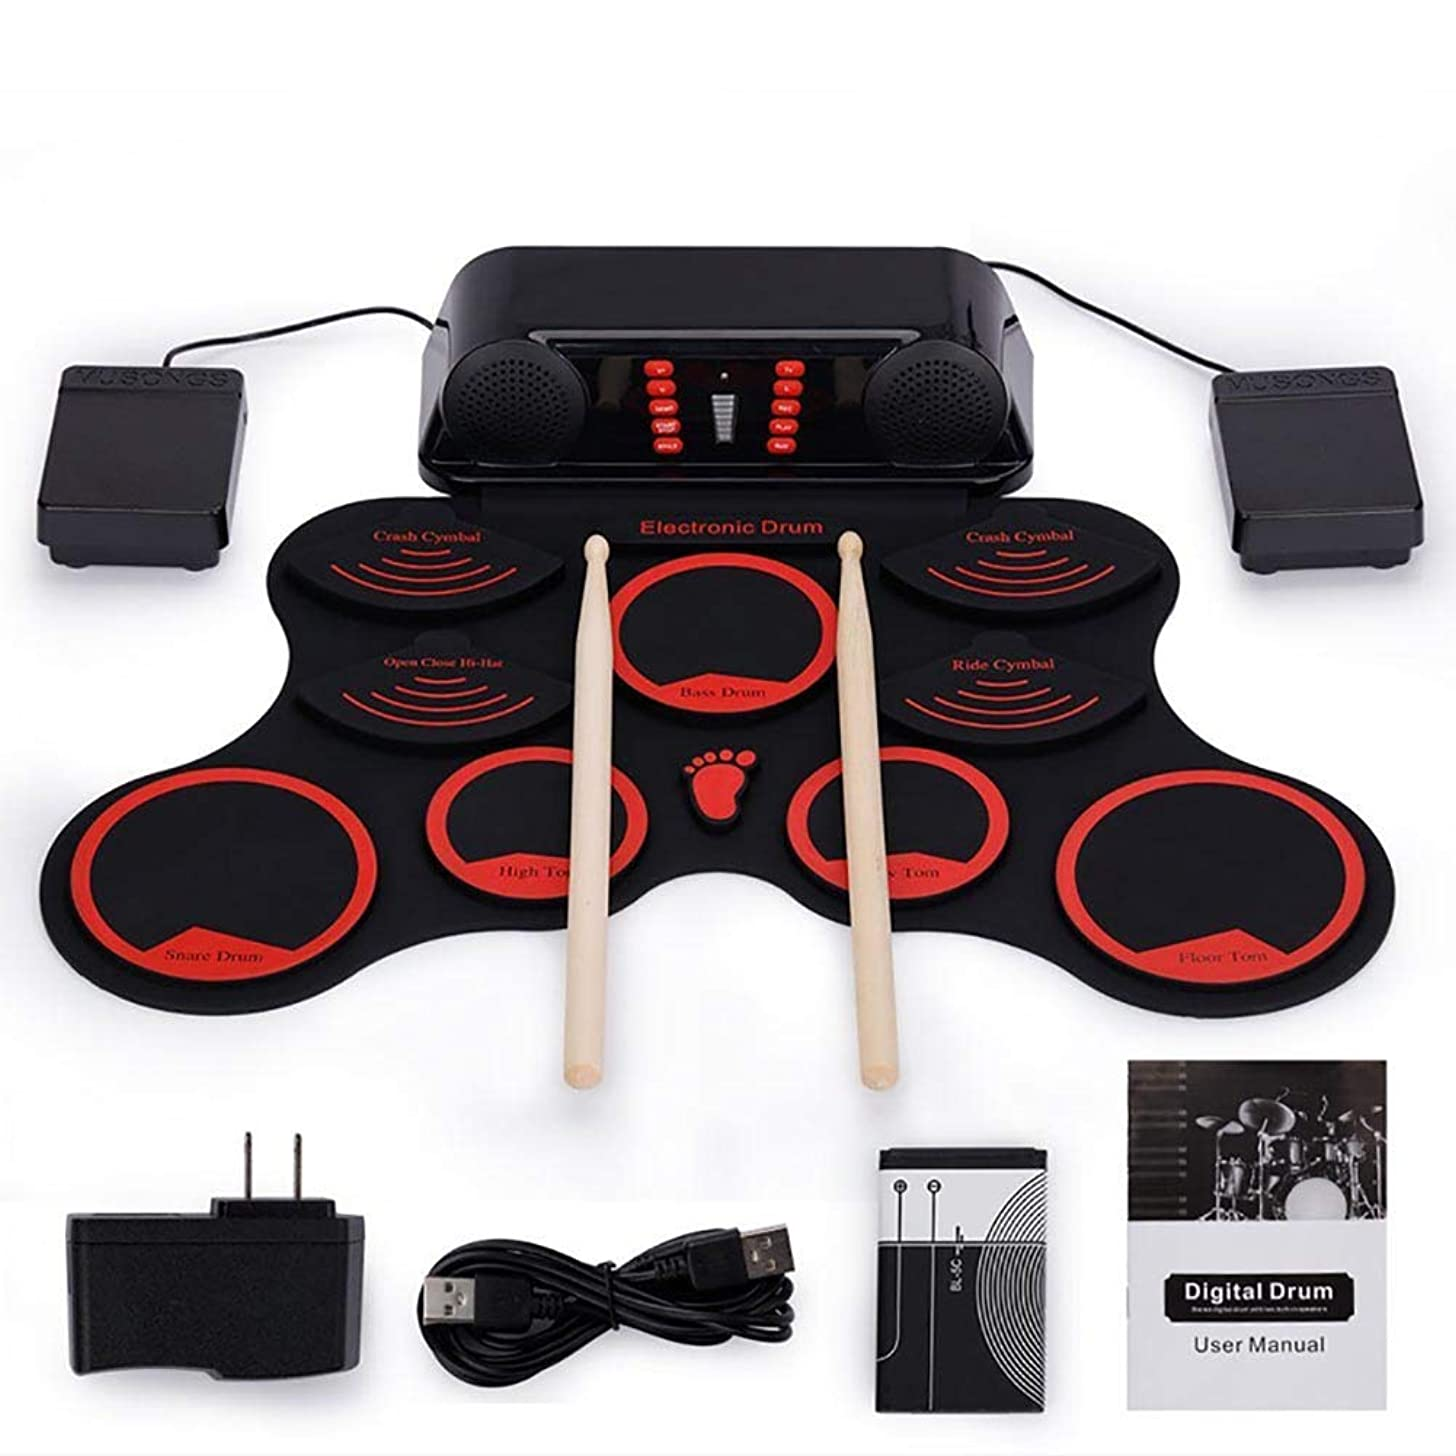 NUYI Hand Roll Electronic Drum Drum Folding Portable Adult Beginner Children Percussion Electronic Drum